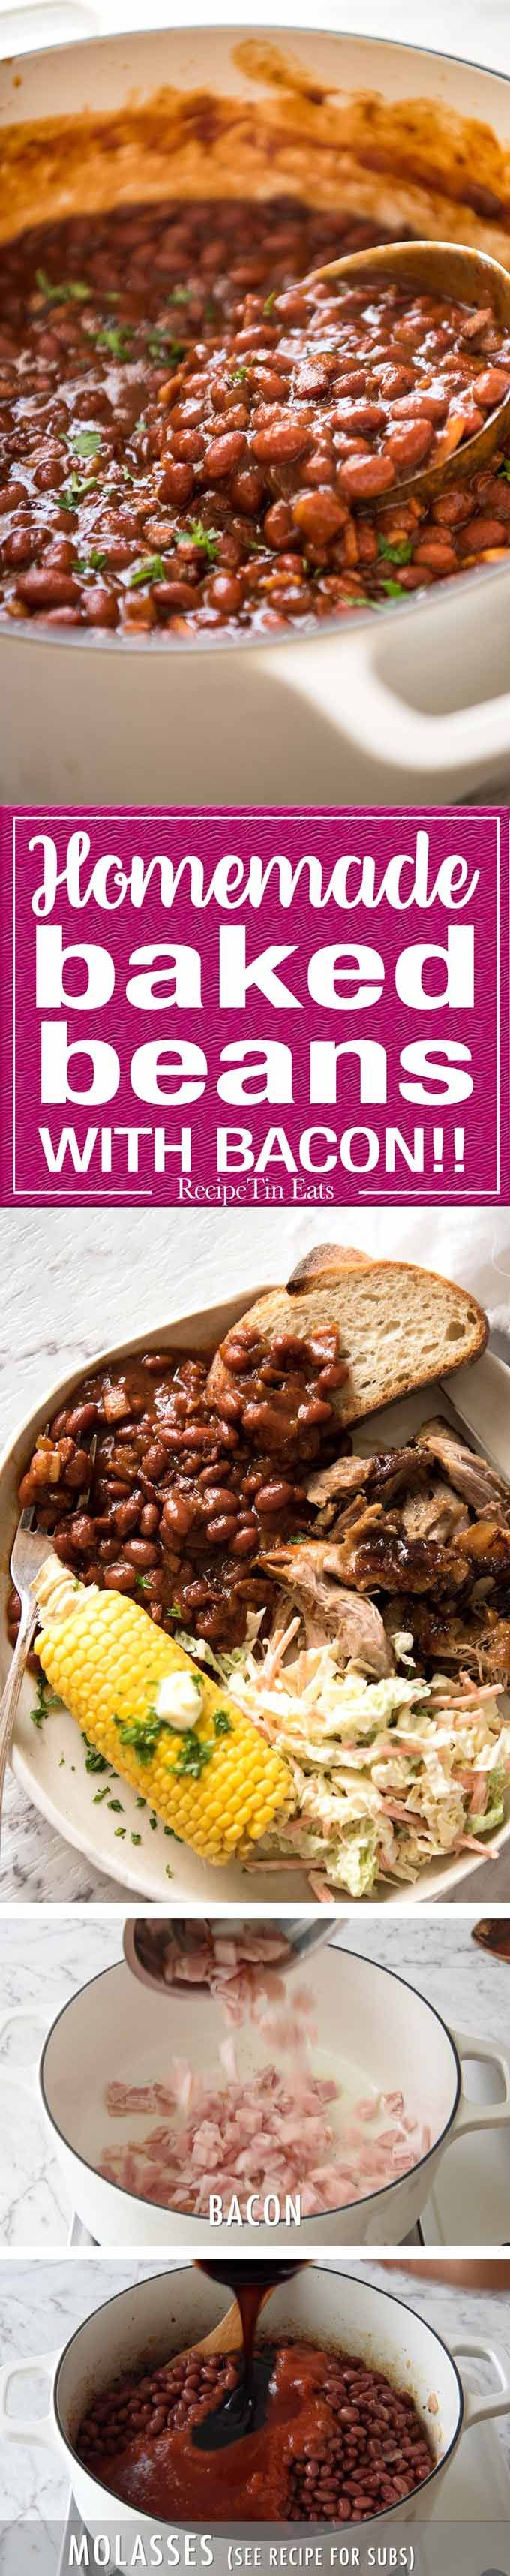 Southern style Homemade Baked Beans with Bacon in a thick, rich savoury sauce with a perfect balance of sweet and a hint of tang.